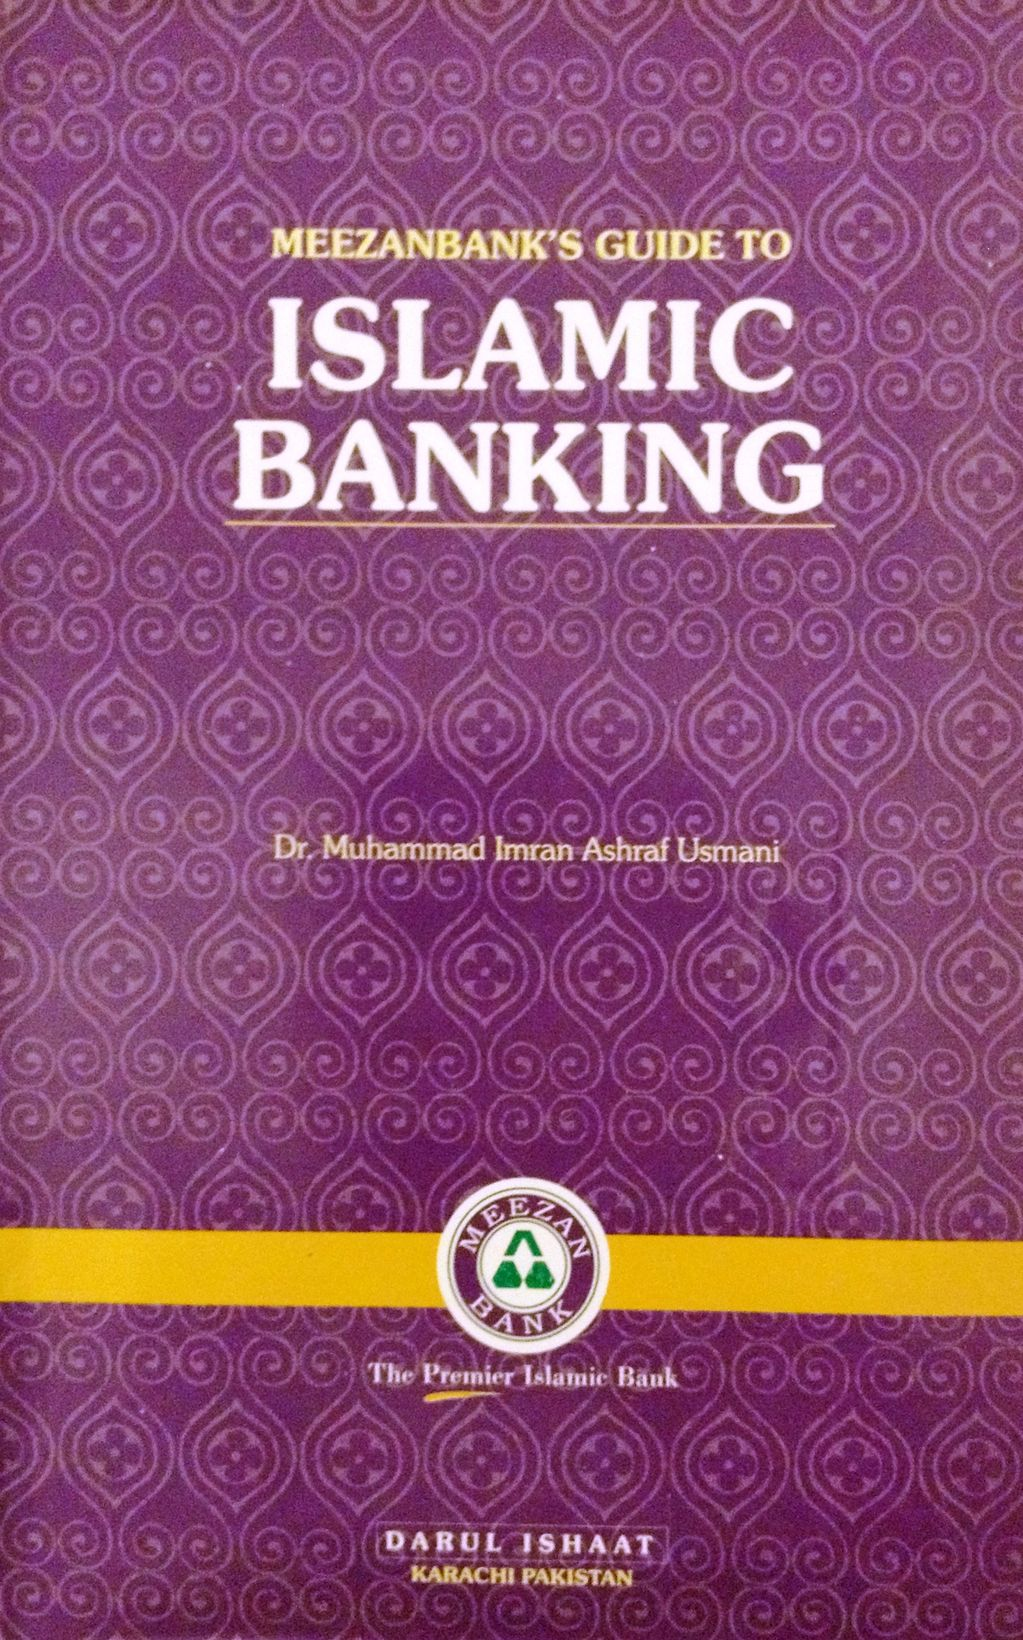 interest free banking and islamic banking in Islamic banking - why interest-free banking the distinguishing feature of an islamic bank, indeed an islamic financial system is the exclusion of riba (interest) from its operation.